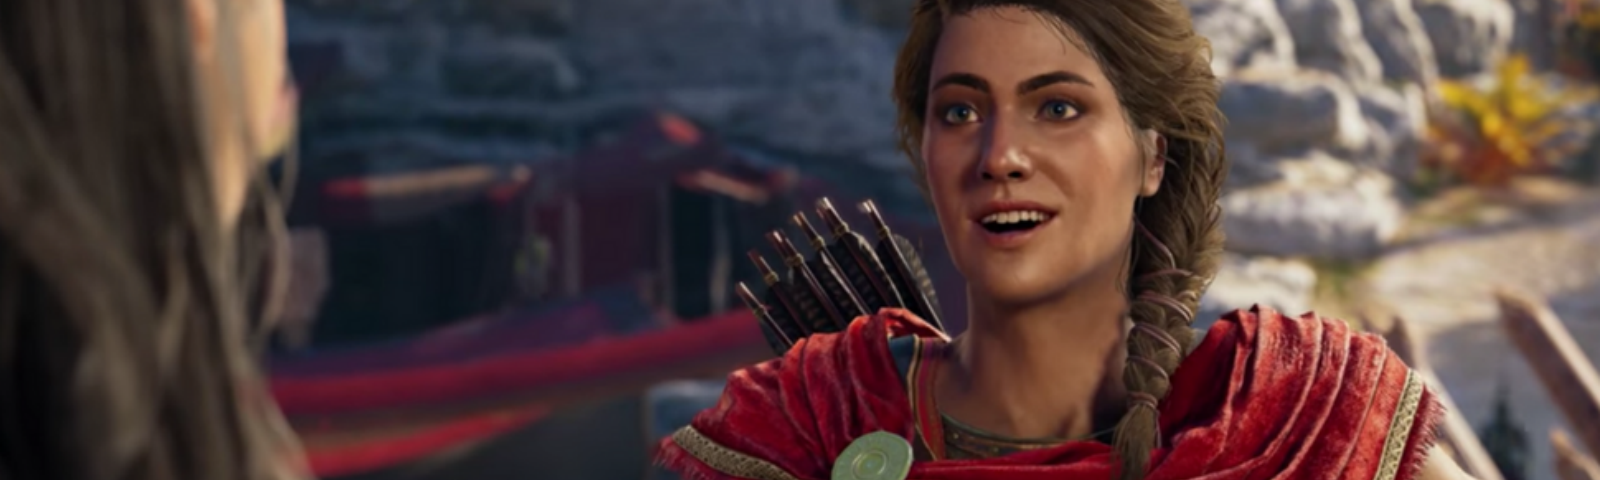 I Played 77 Hours Of Assassin S Creed Odyssey By Michael